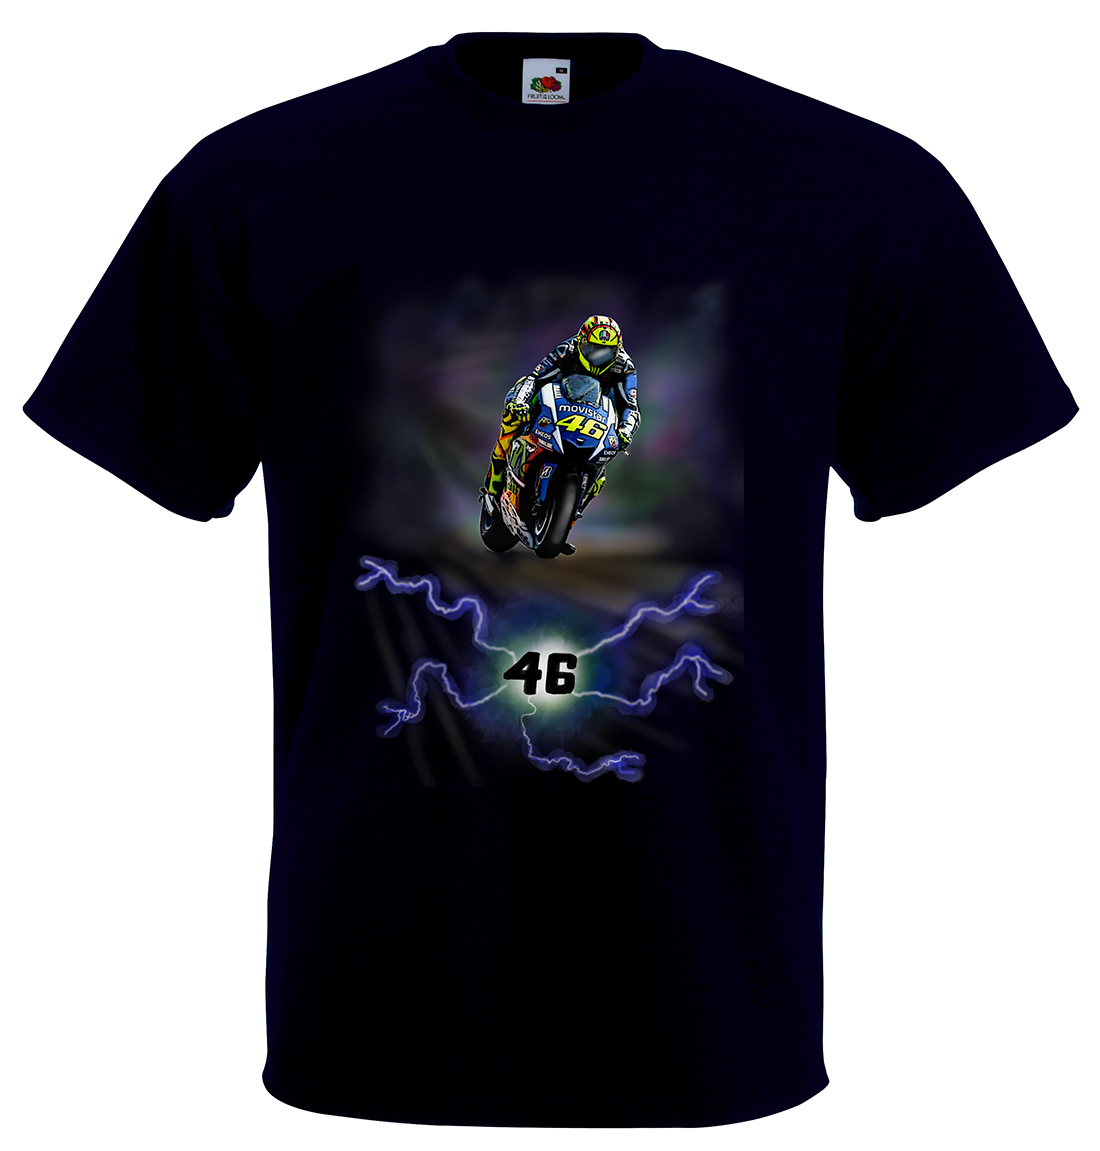 airbrushed valentino rossi t shirt in all kids sizes ebay. Black Bedroom Furniture Sets. Home Design Ideas